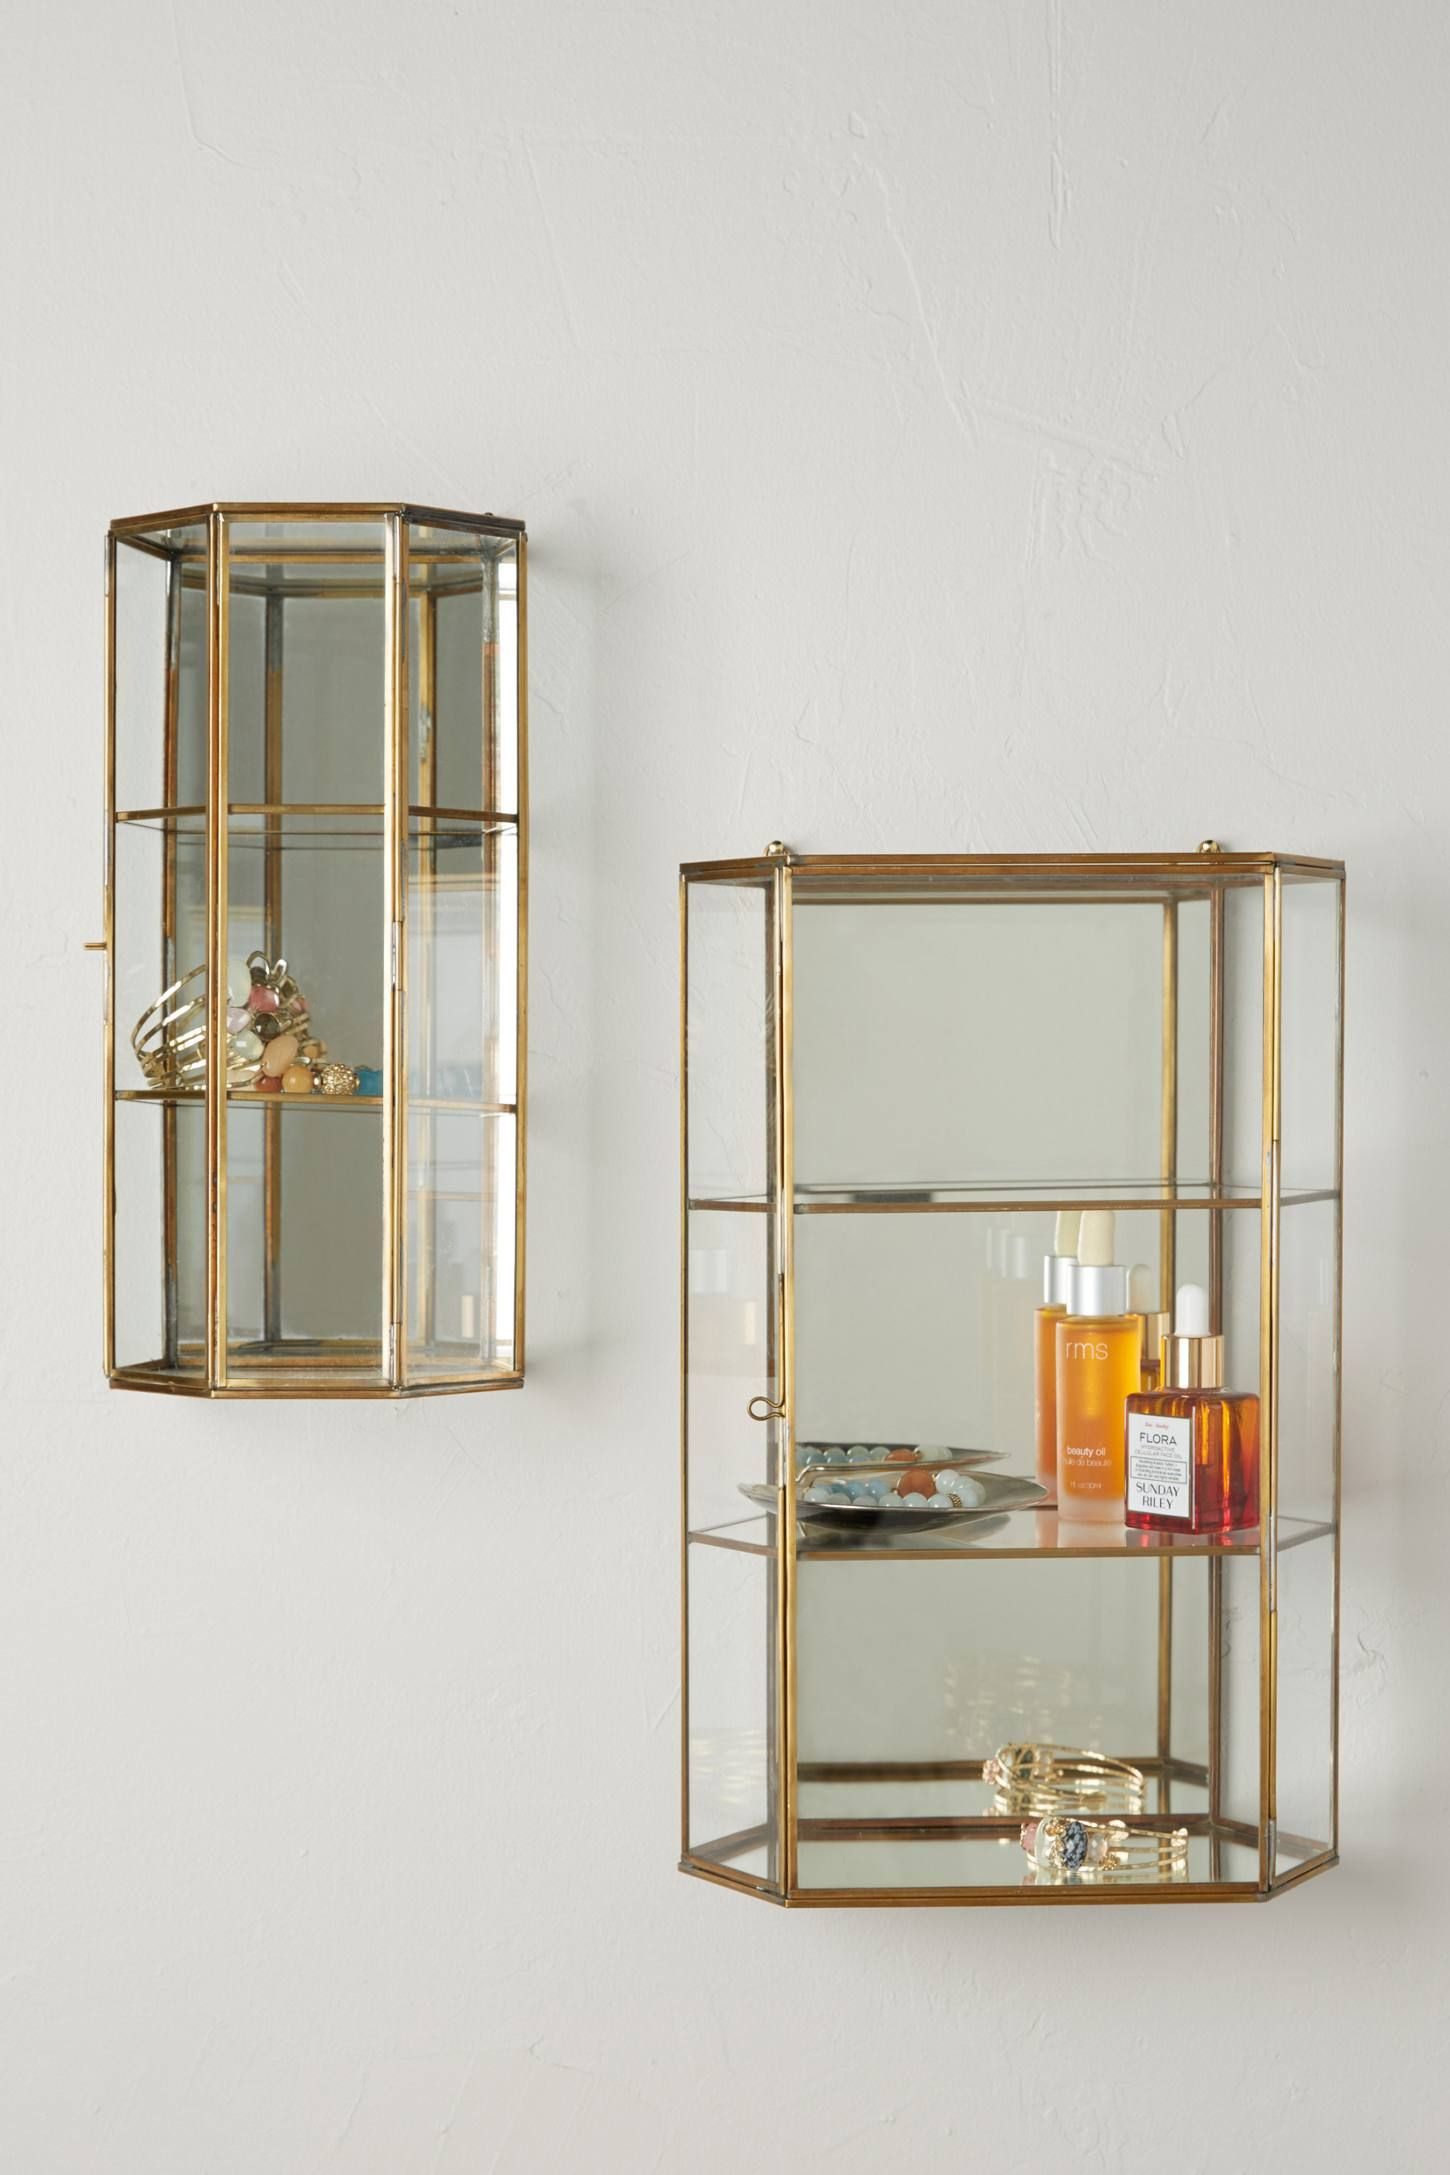 Superbe Shop The Wall Curio Cabinet And More Anthropologie At Anthropologie Today.  Read Customer Reviews, Discover Product Details And More.